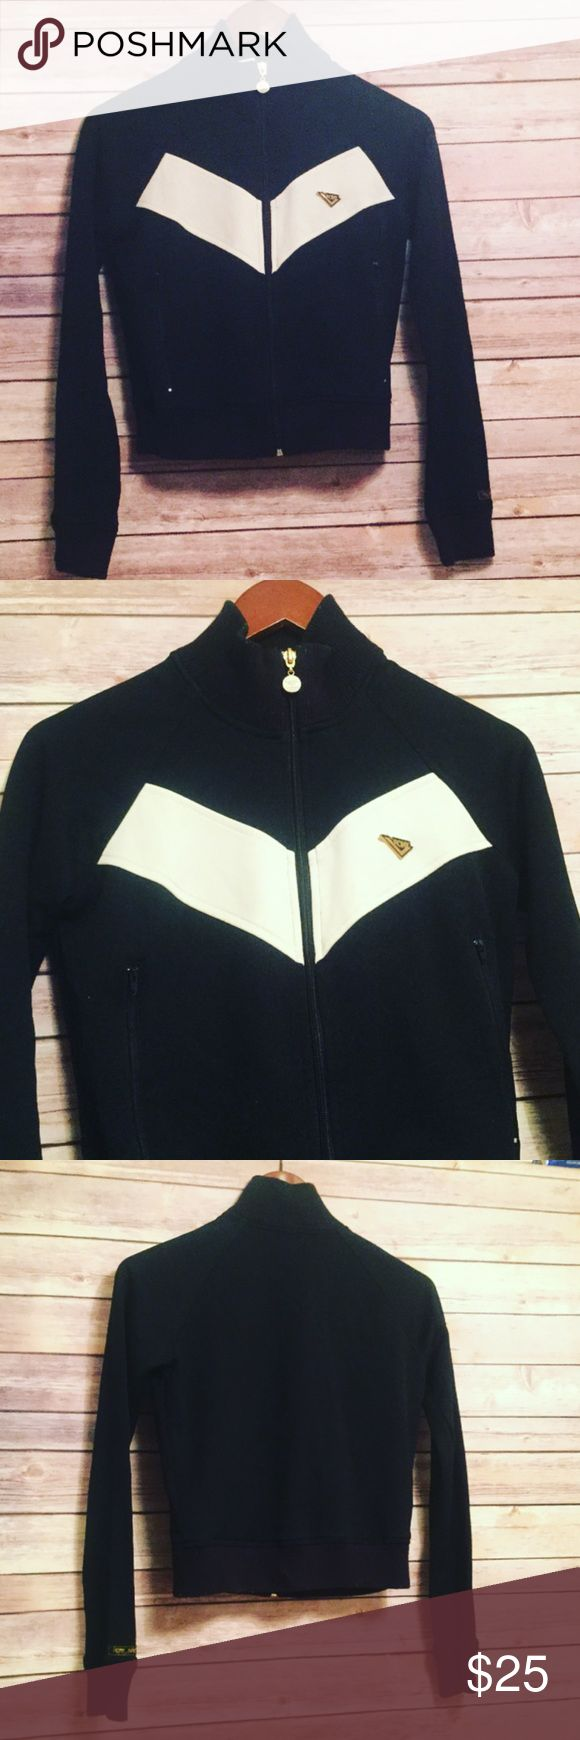 RETRO Pony Track Jacket Super Cute Zip up Track Jacket!! Pony Retro Style that will Look Adorable with your Favorite distressed jeans!!! Pony Jackets & Coats Utility Jackets